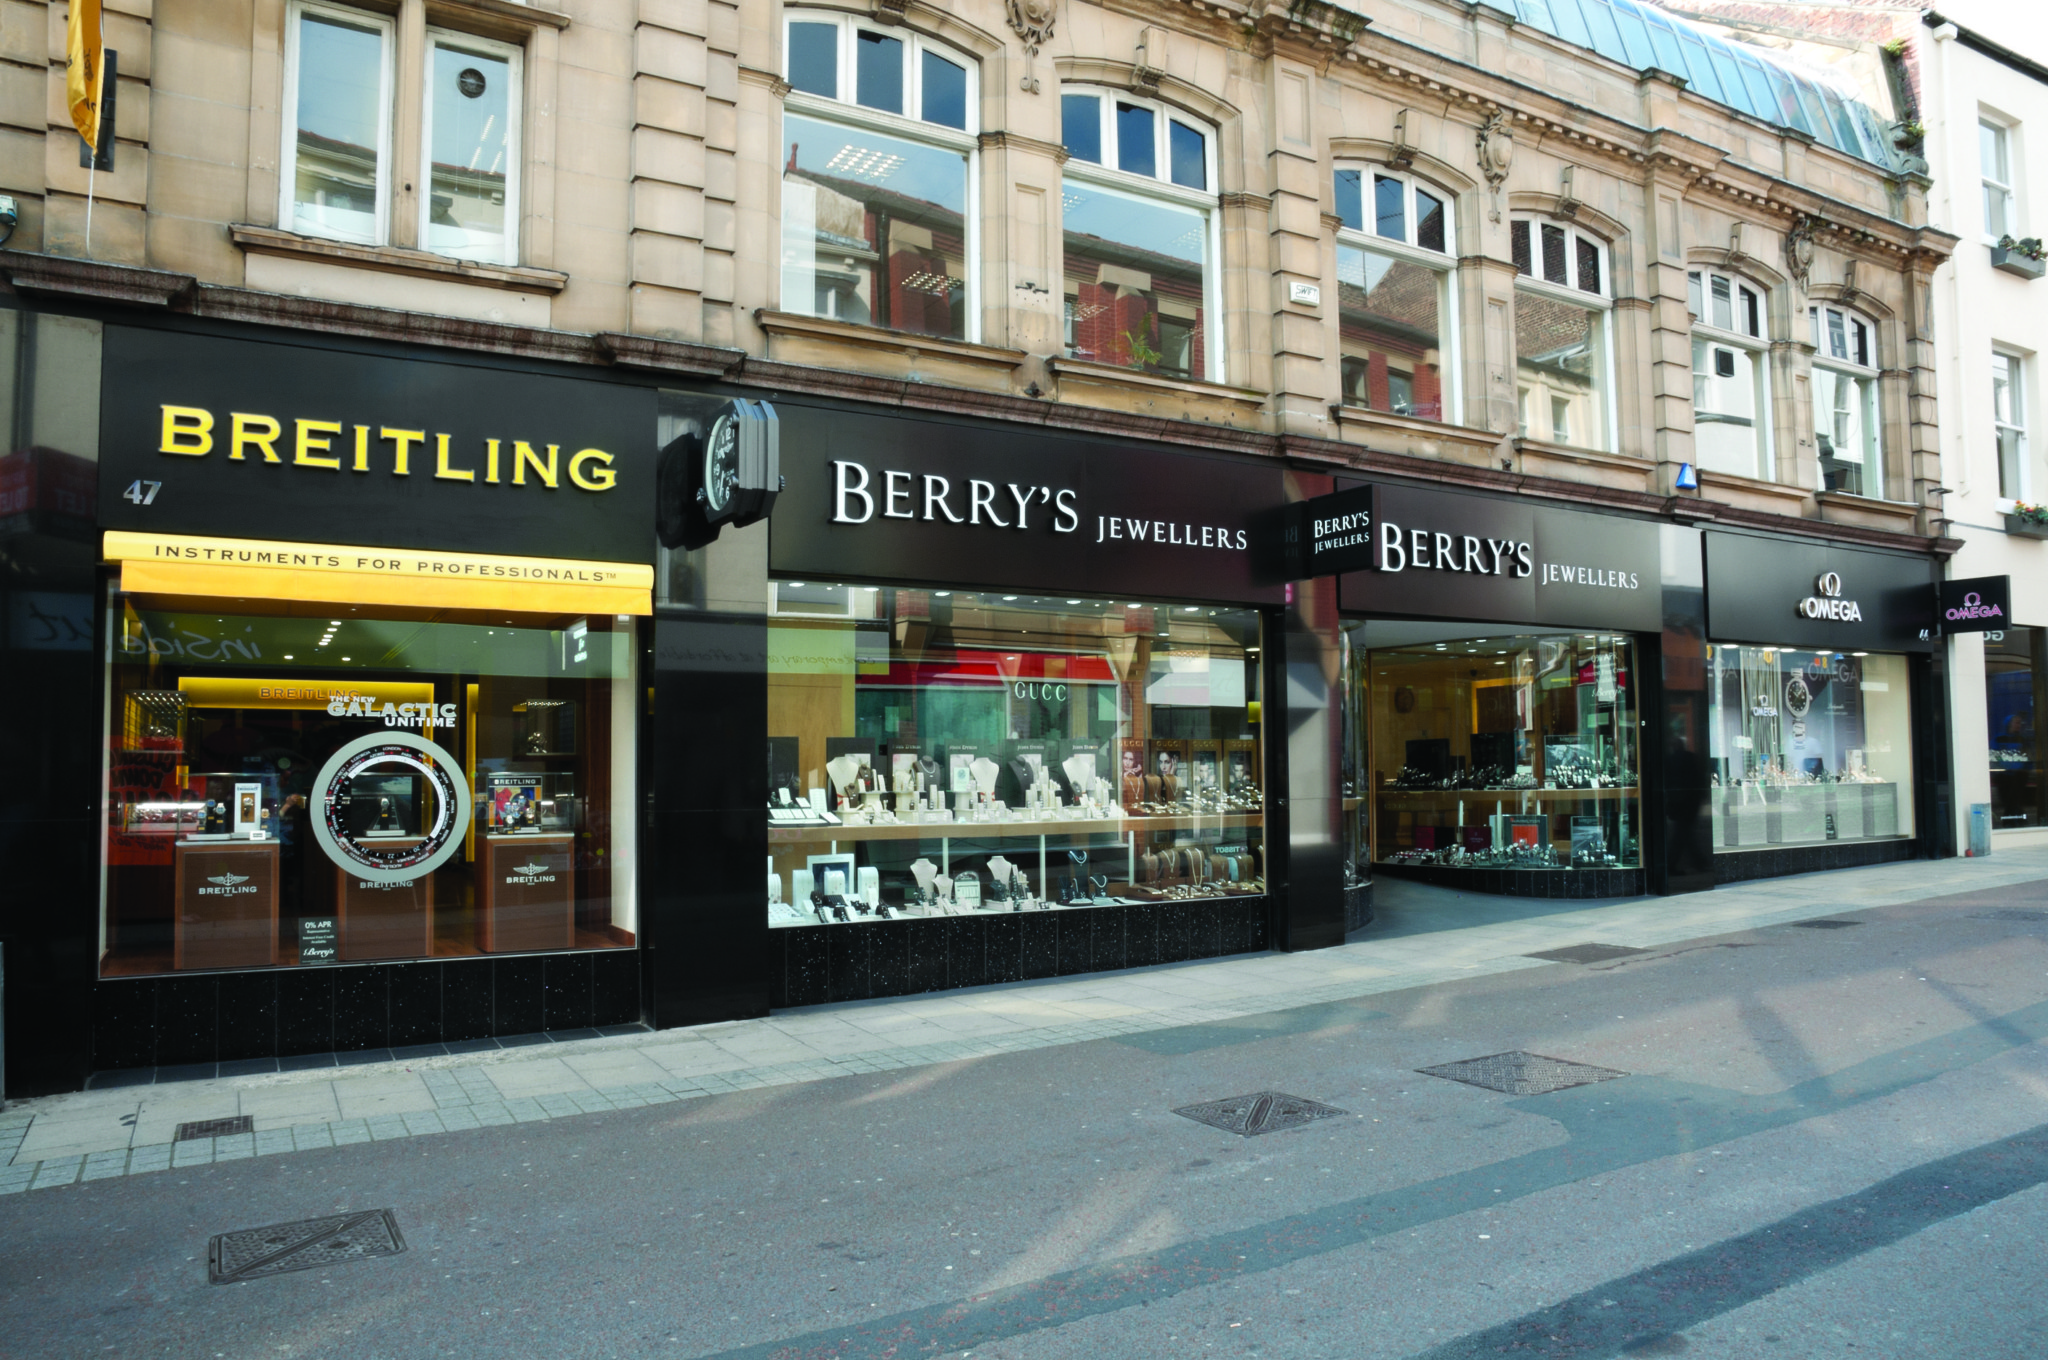 Berry's has created a parade of luxury monobrand store fronts on Commercial Street in Leeds. Rivals have Rolex and Patek Philippe boutiques on the same street, turning it into a local version of London's Bond Street.